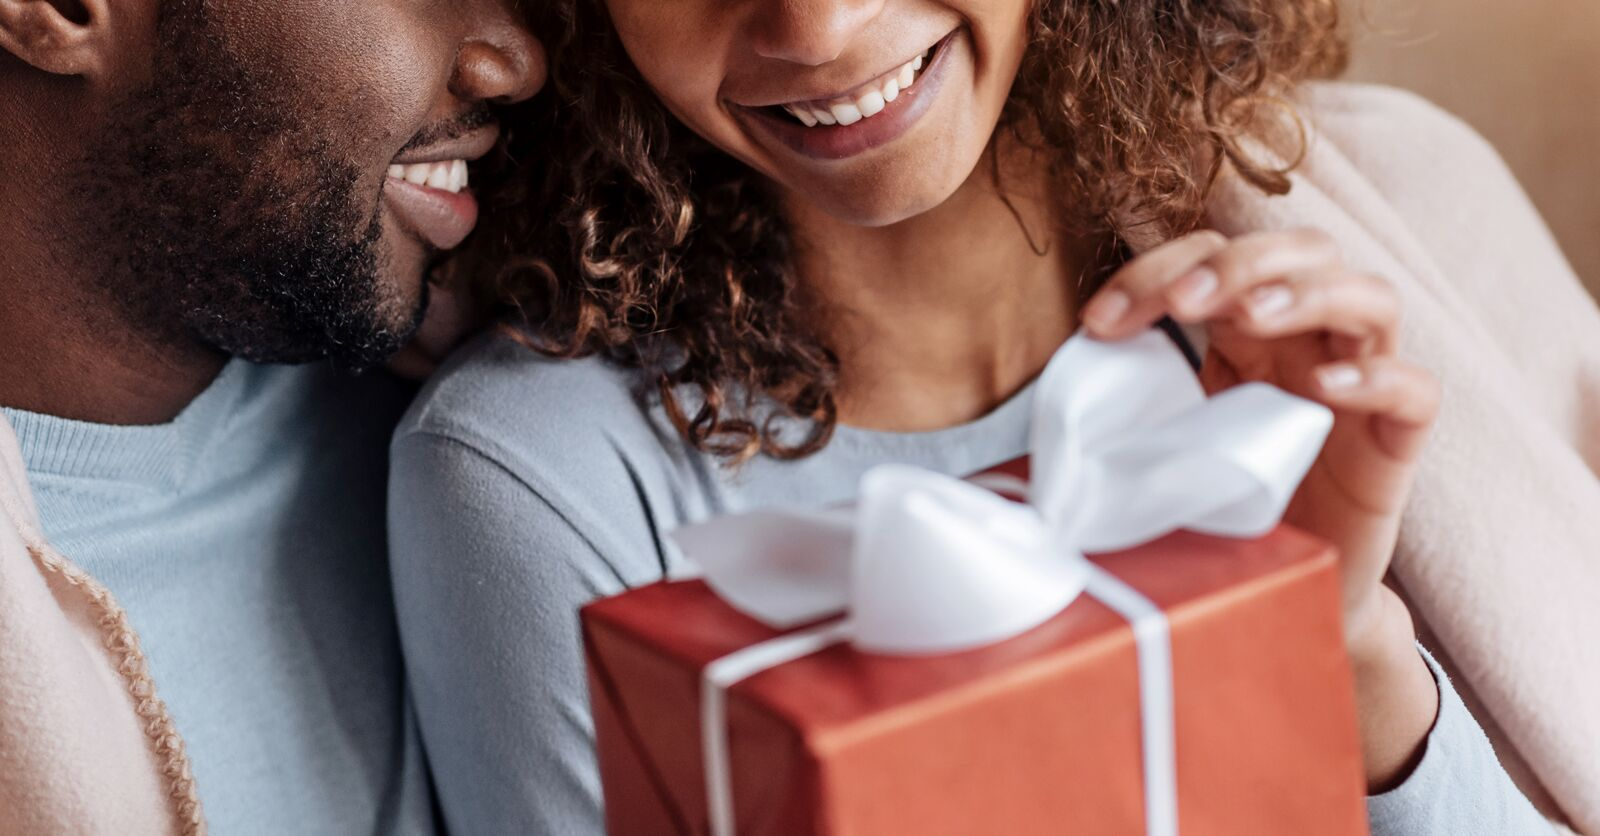 Anniversary gifts by year traditional modern gifts for him her